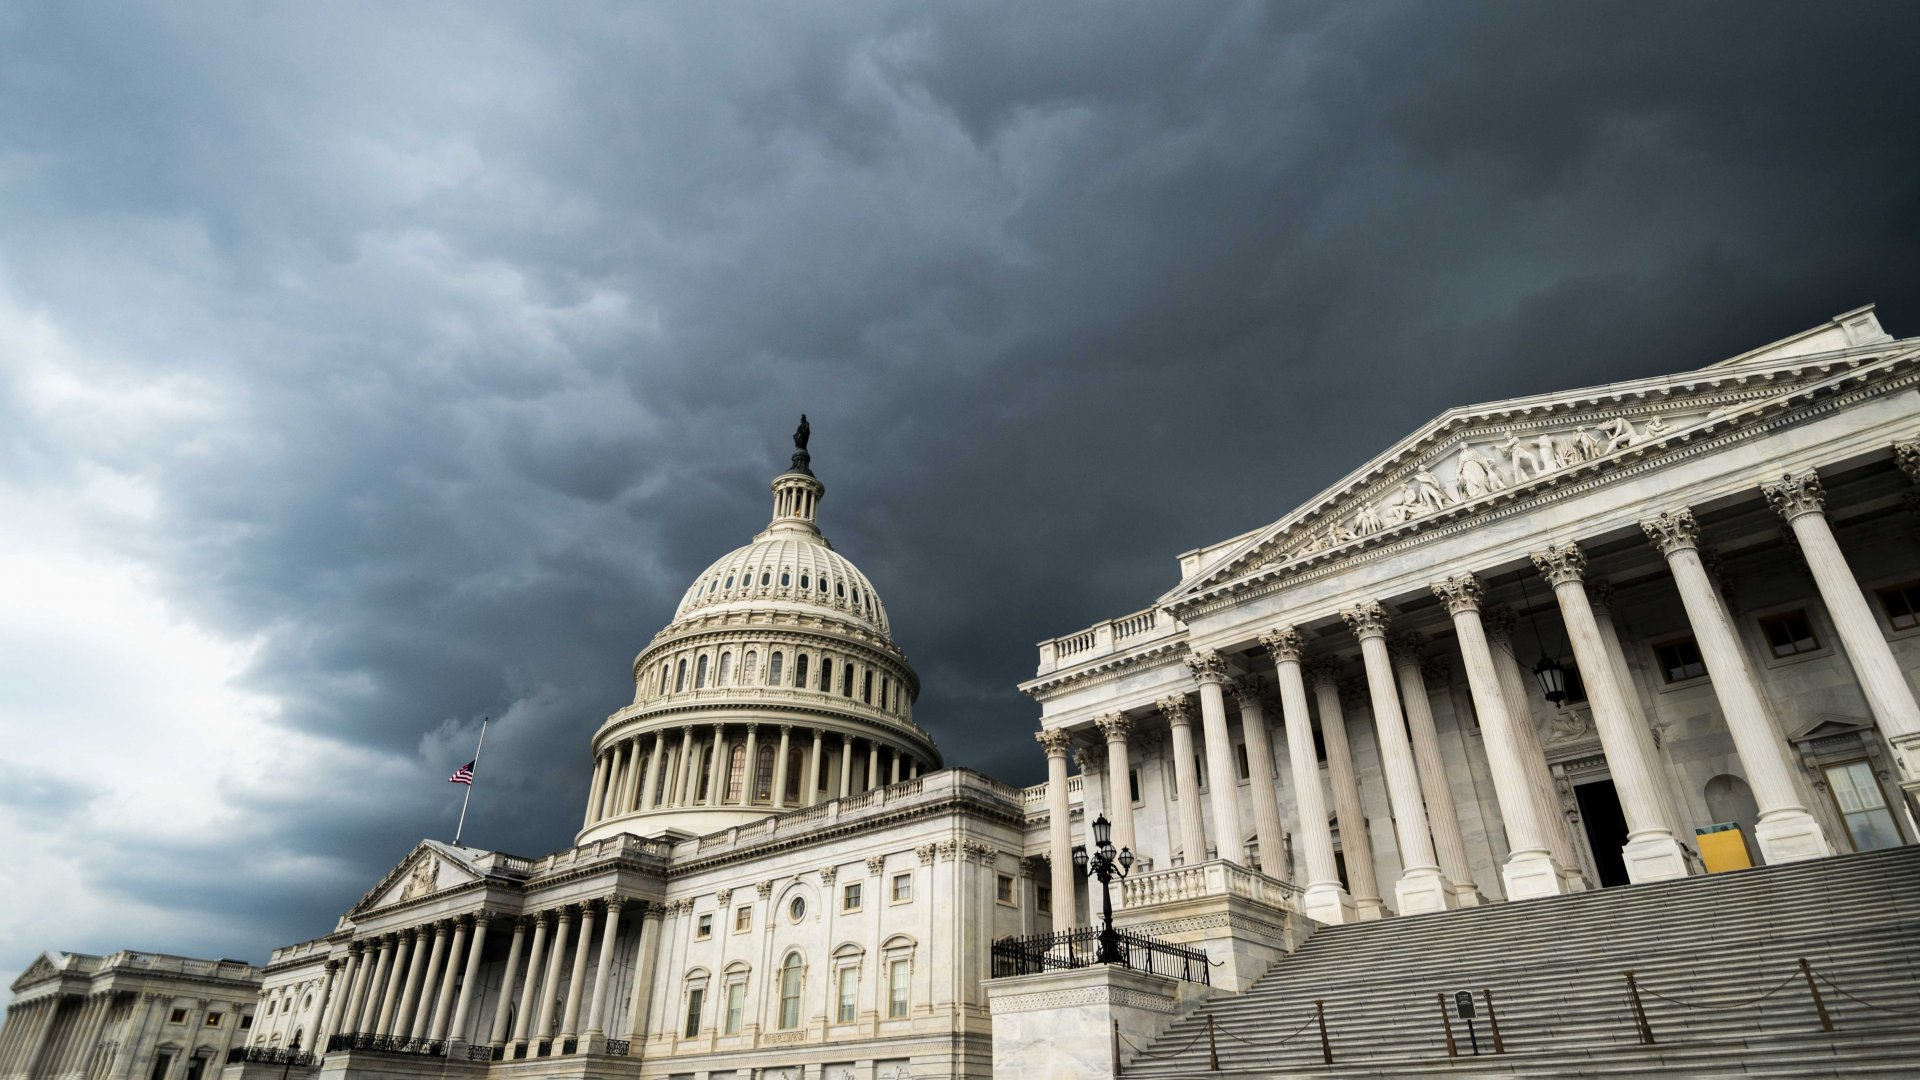 This Is Not a Disaster Movie. If Congress Doesn't Act, Though, It Could Start to Feel That Way